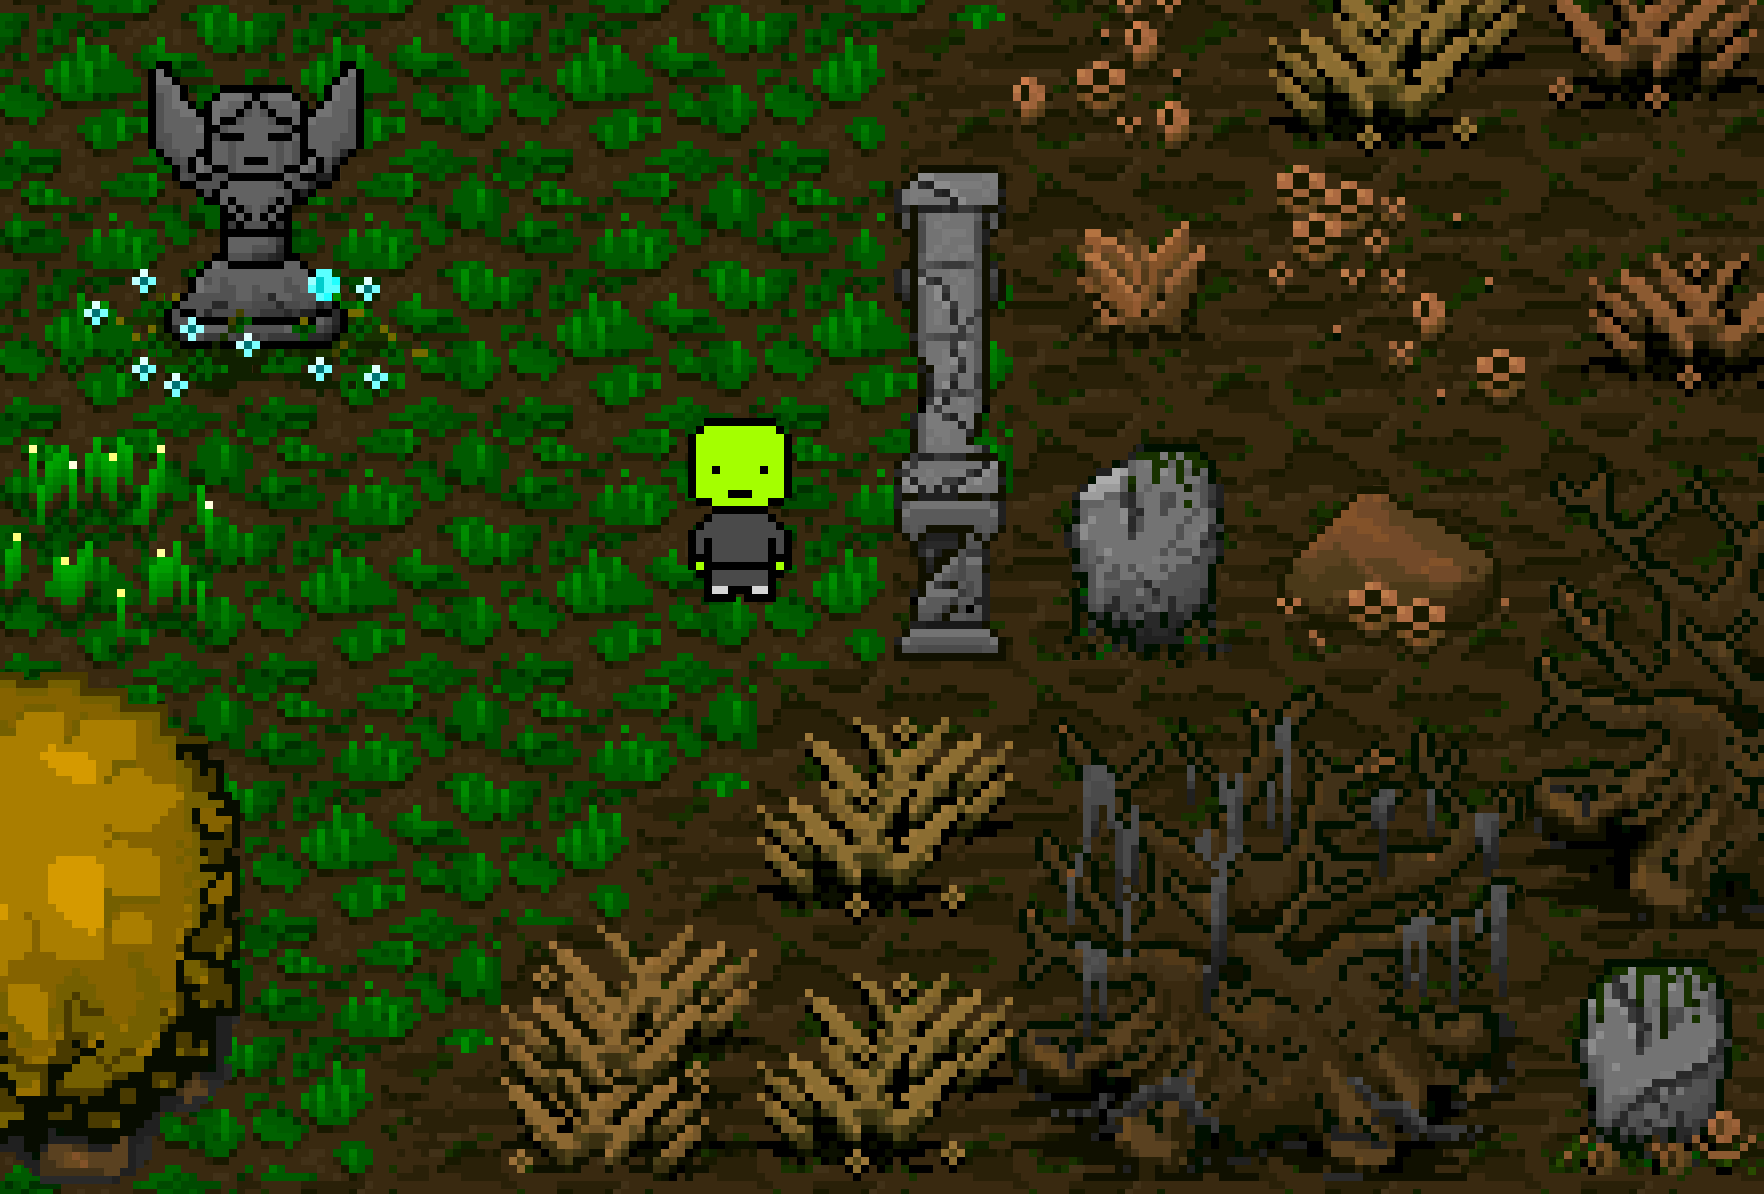 Biome signposting and a quick note about character customization